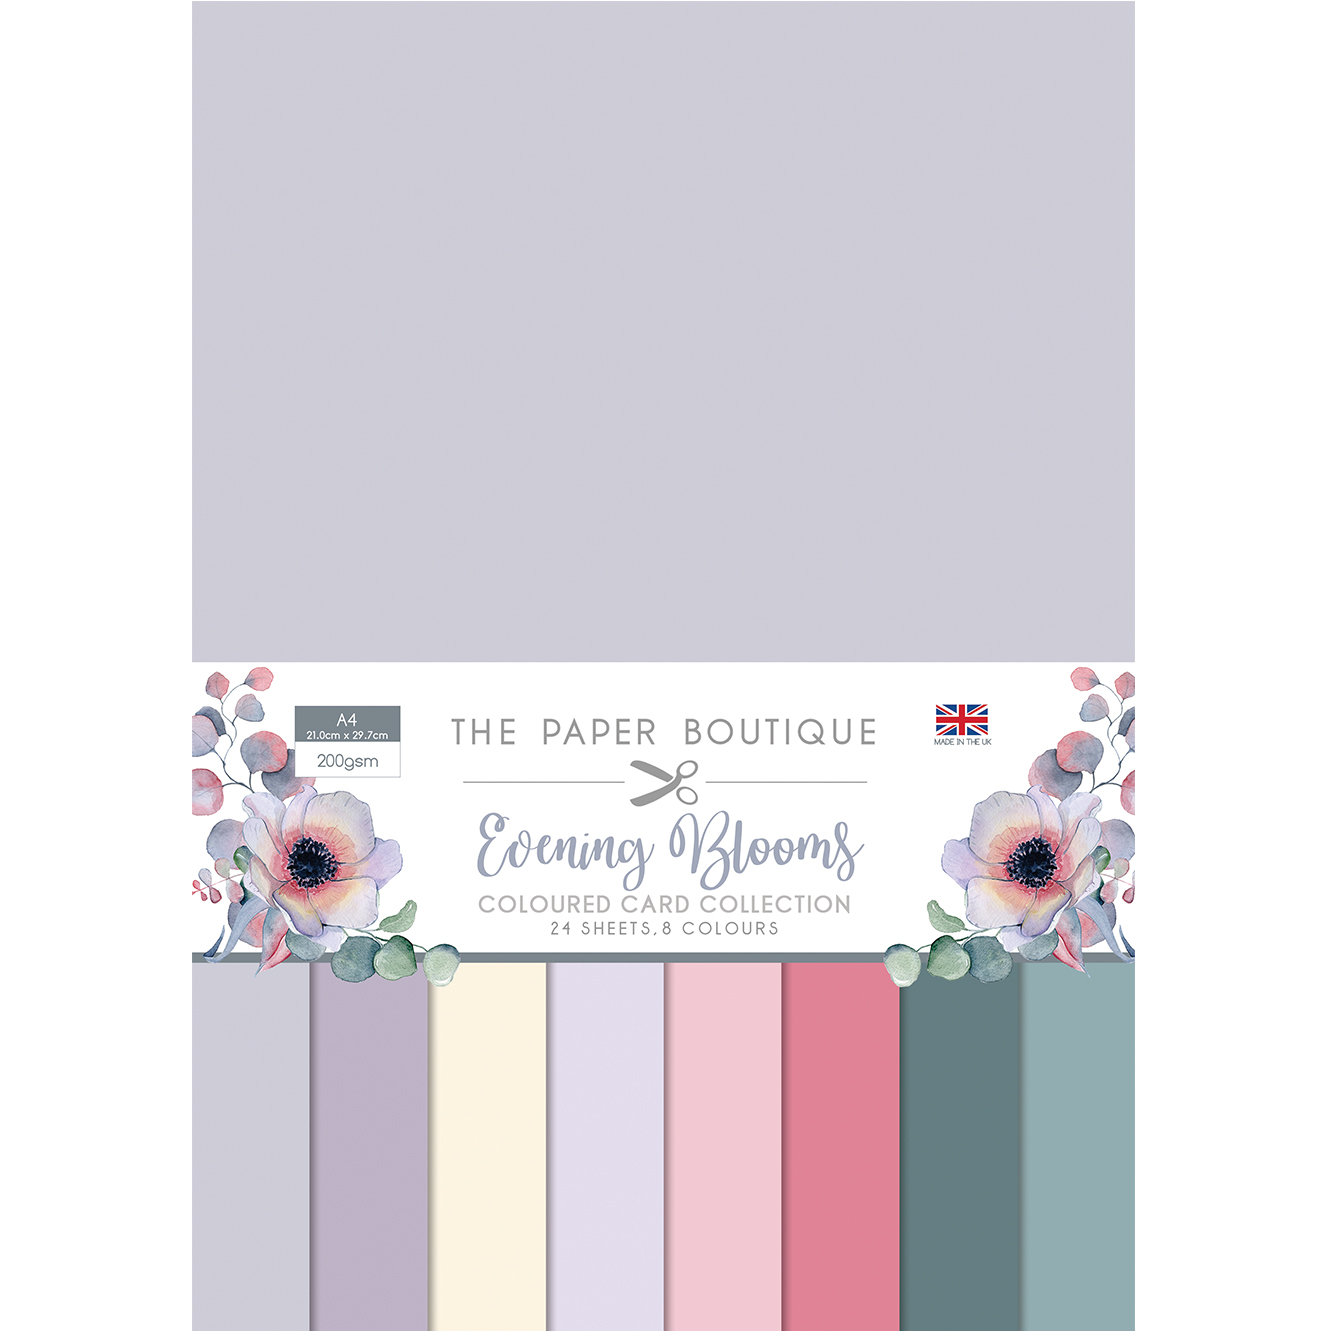 The Paper Boutique Evening Blooms Coloured Card Collection